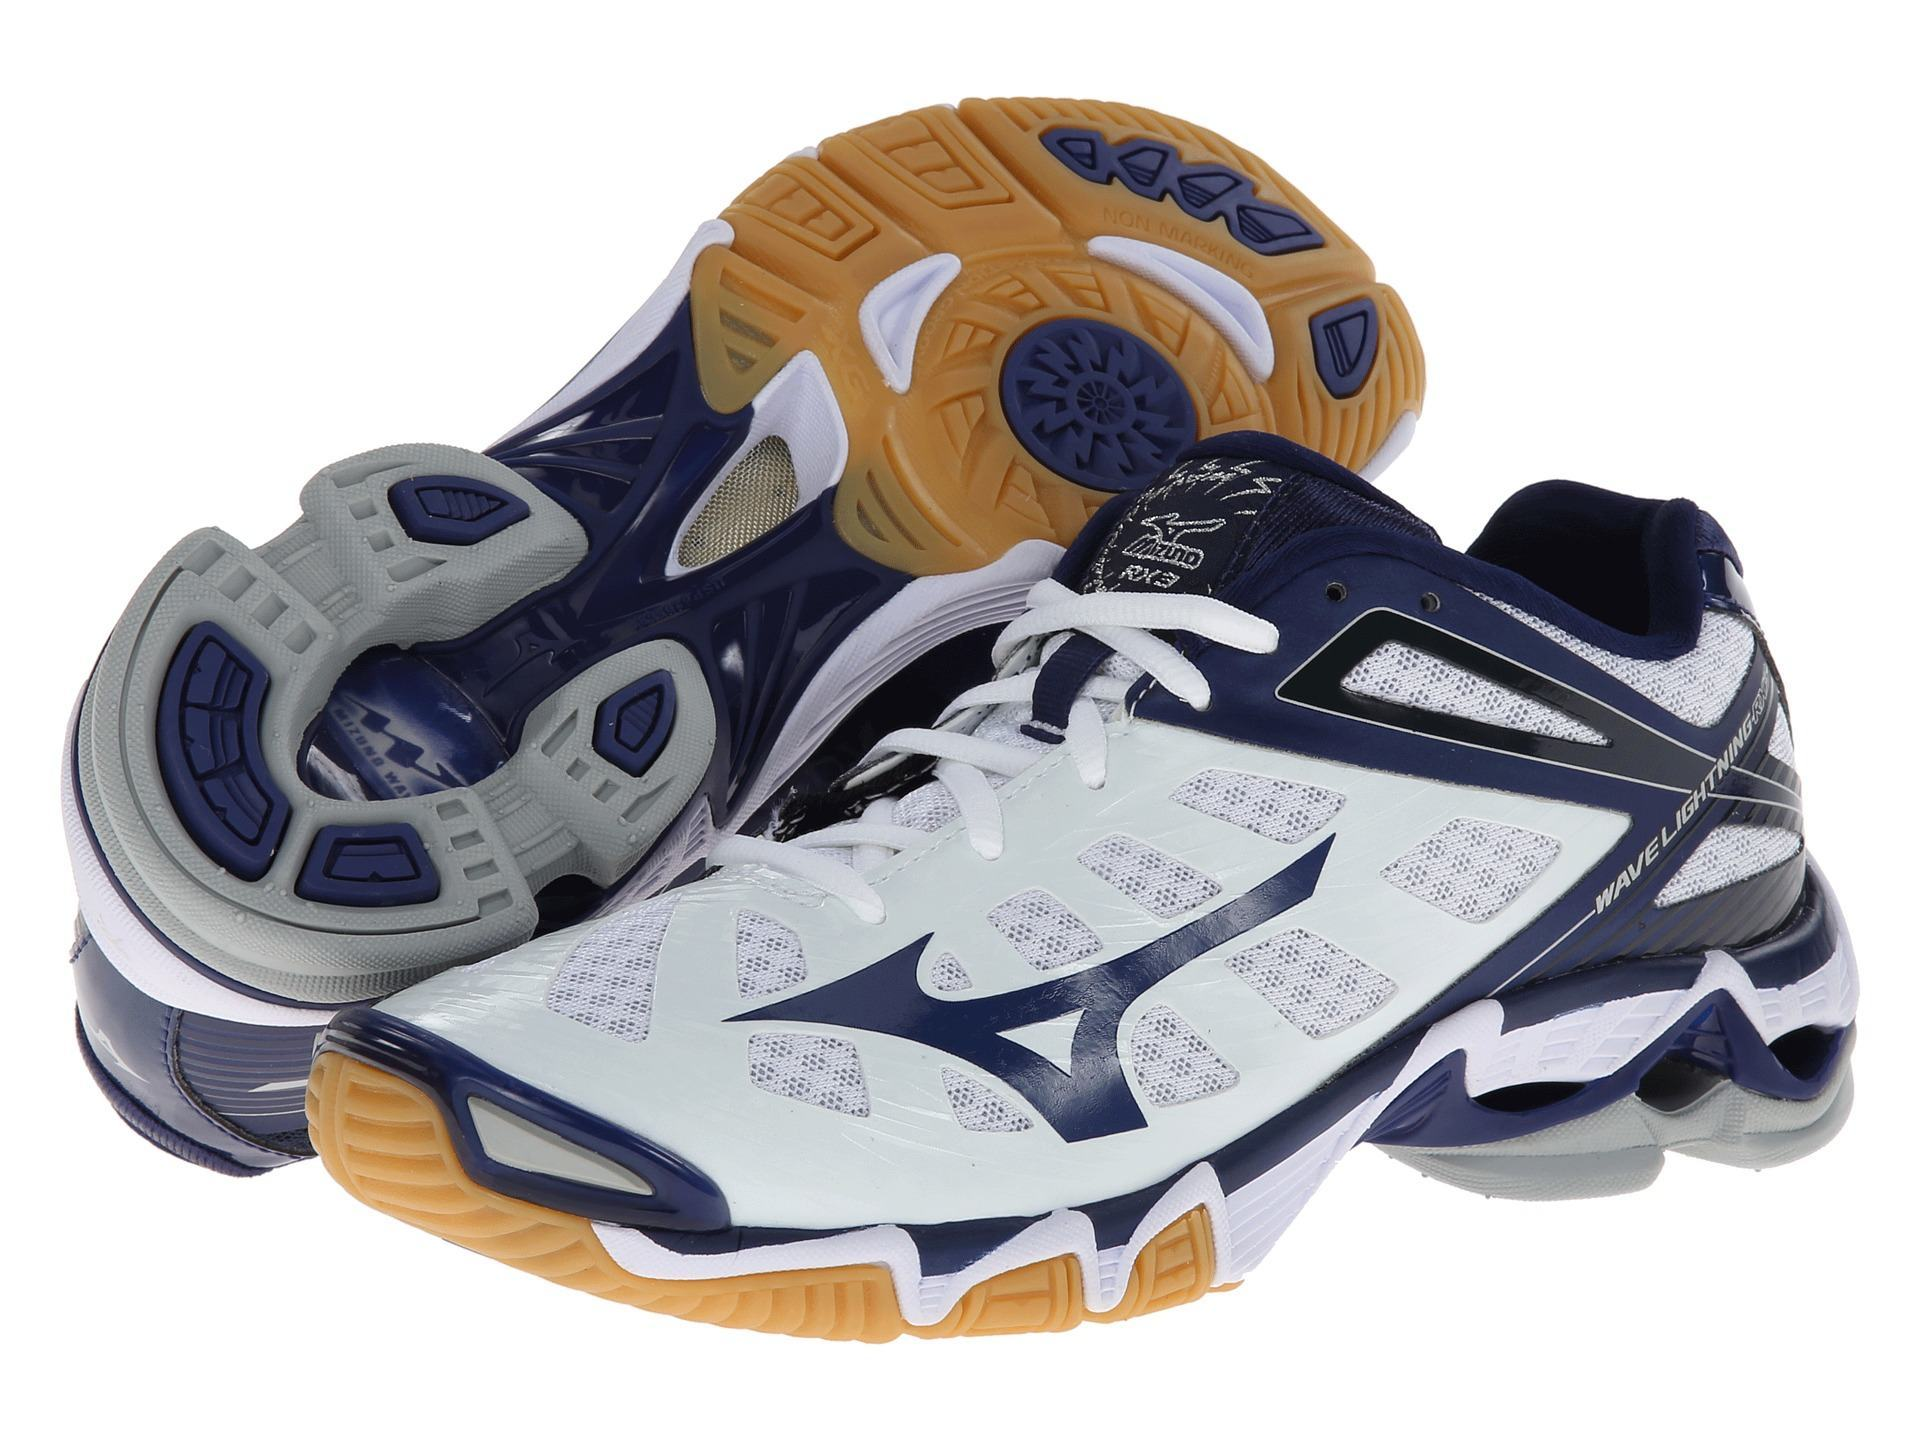 30a70109bab6 mizuno wave bolt 3 navy on sale > OFF72% Discounts